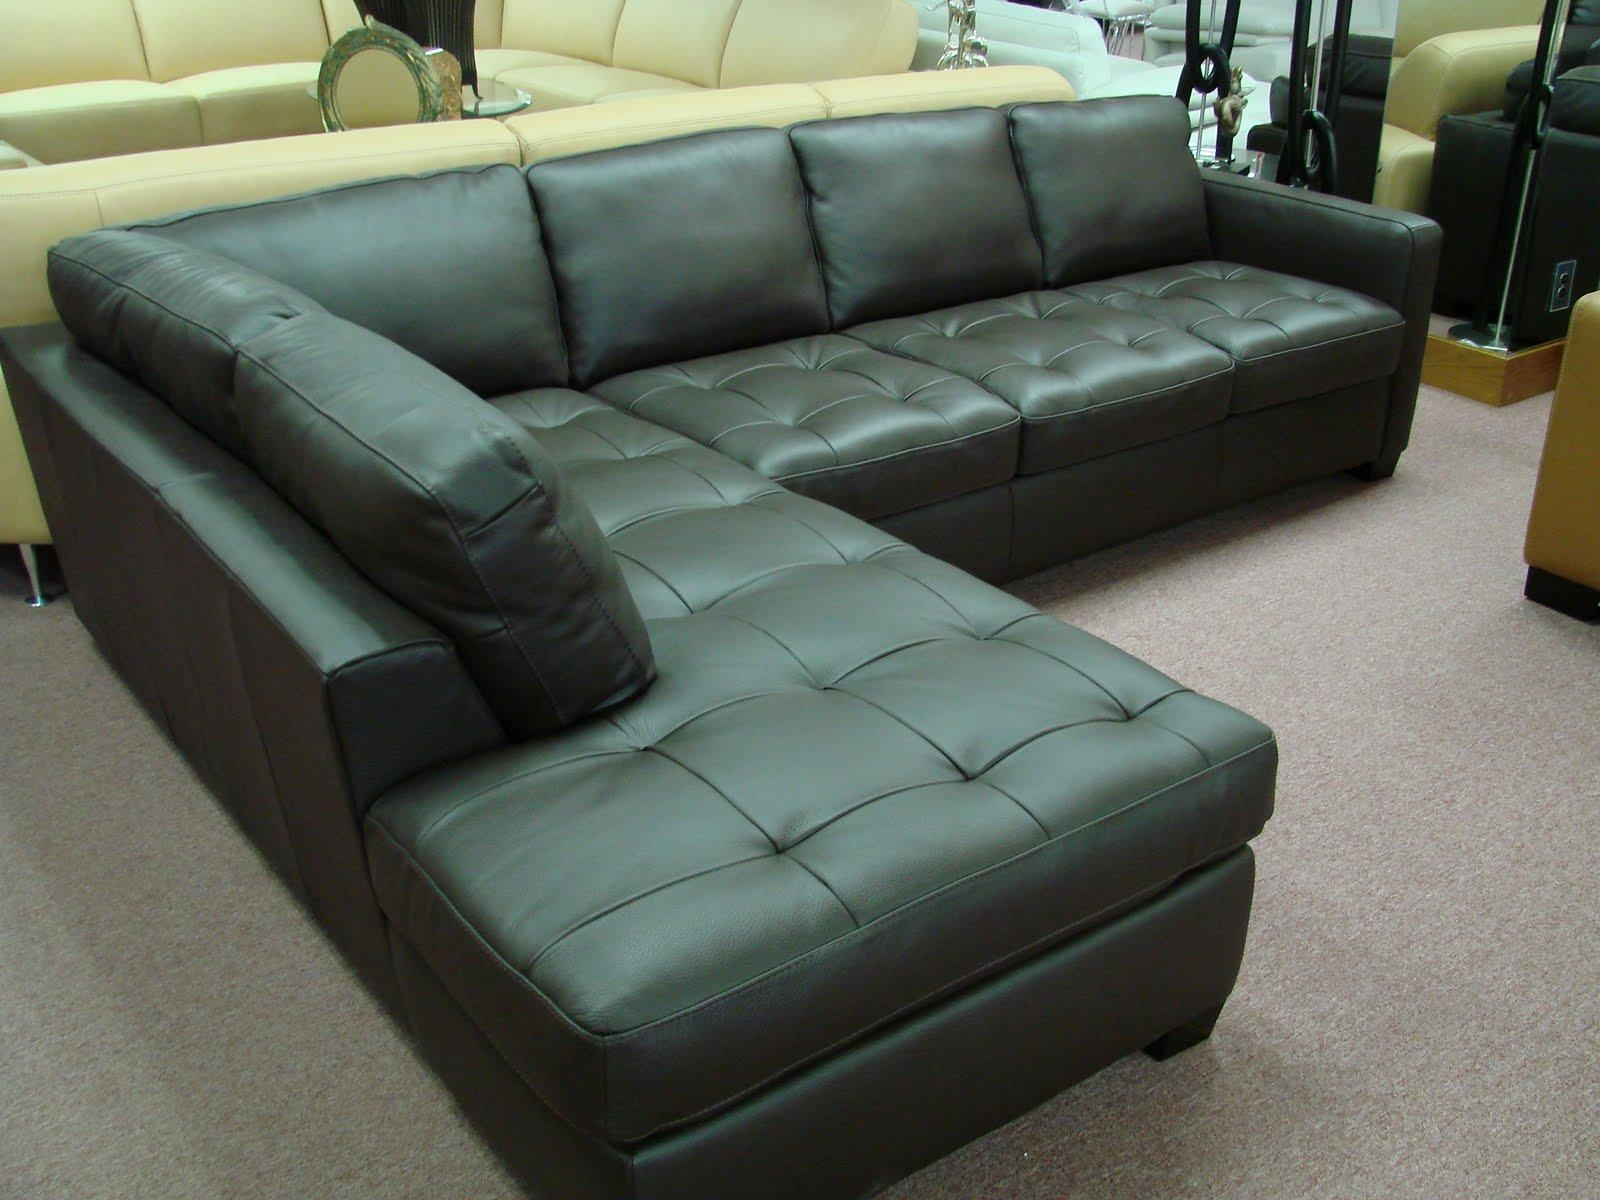 Sealy Leather Sofa With Ideas Photo 20362 | Kengire For Sealy Sofas (Image 11 of 20)